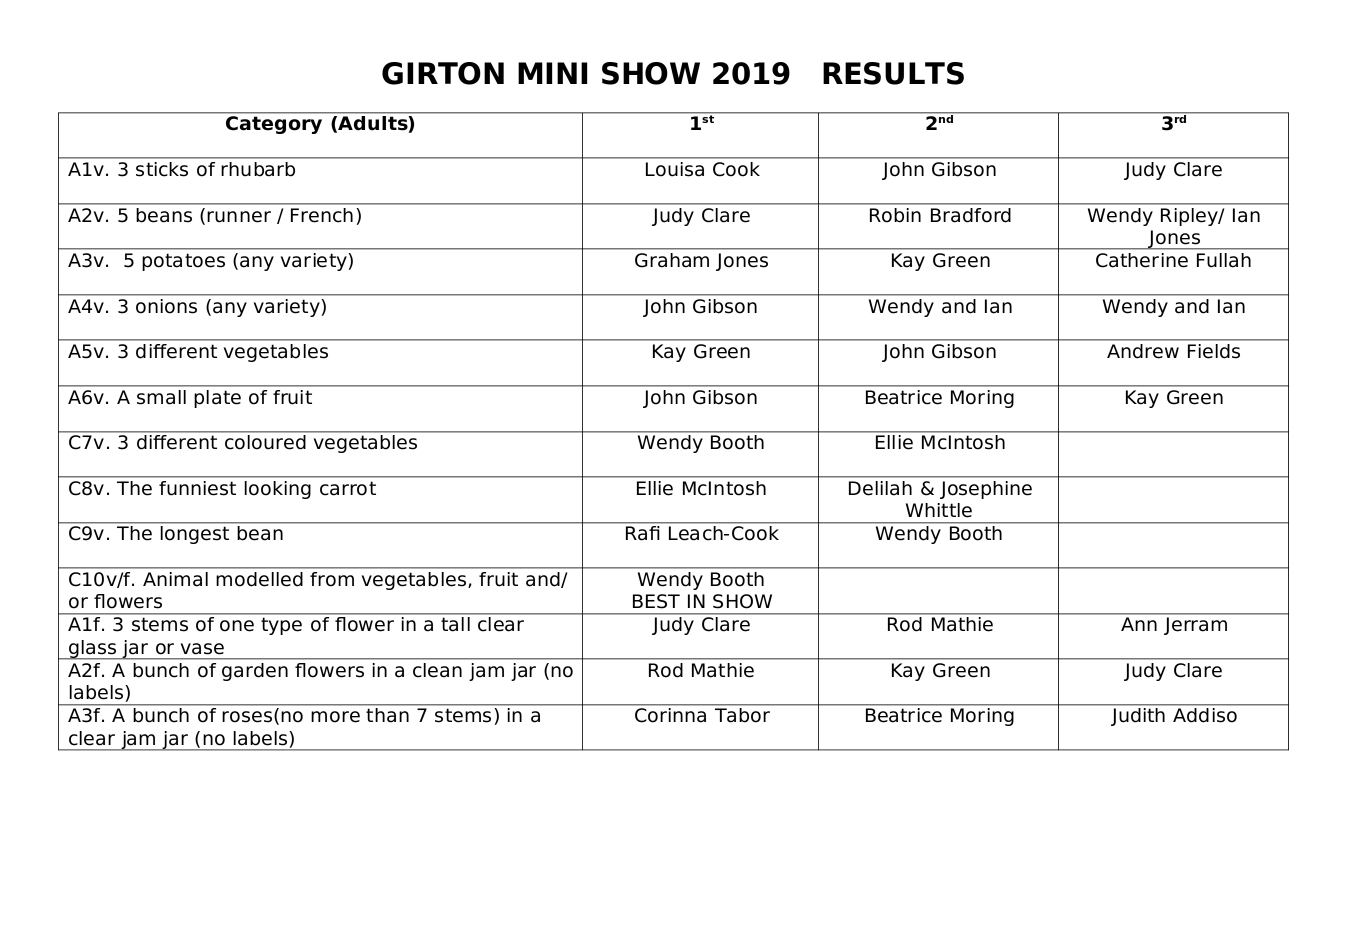 GIRTON MINI SHOW 2019   Table of RESULTS